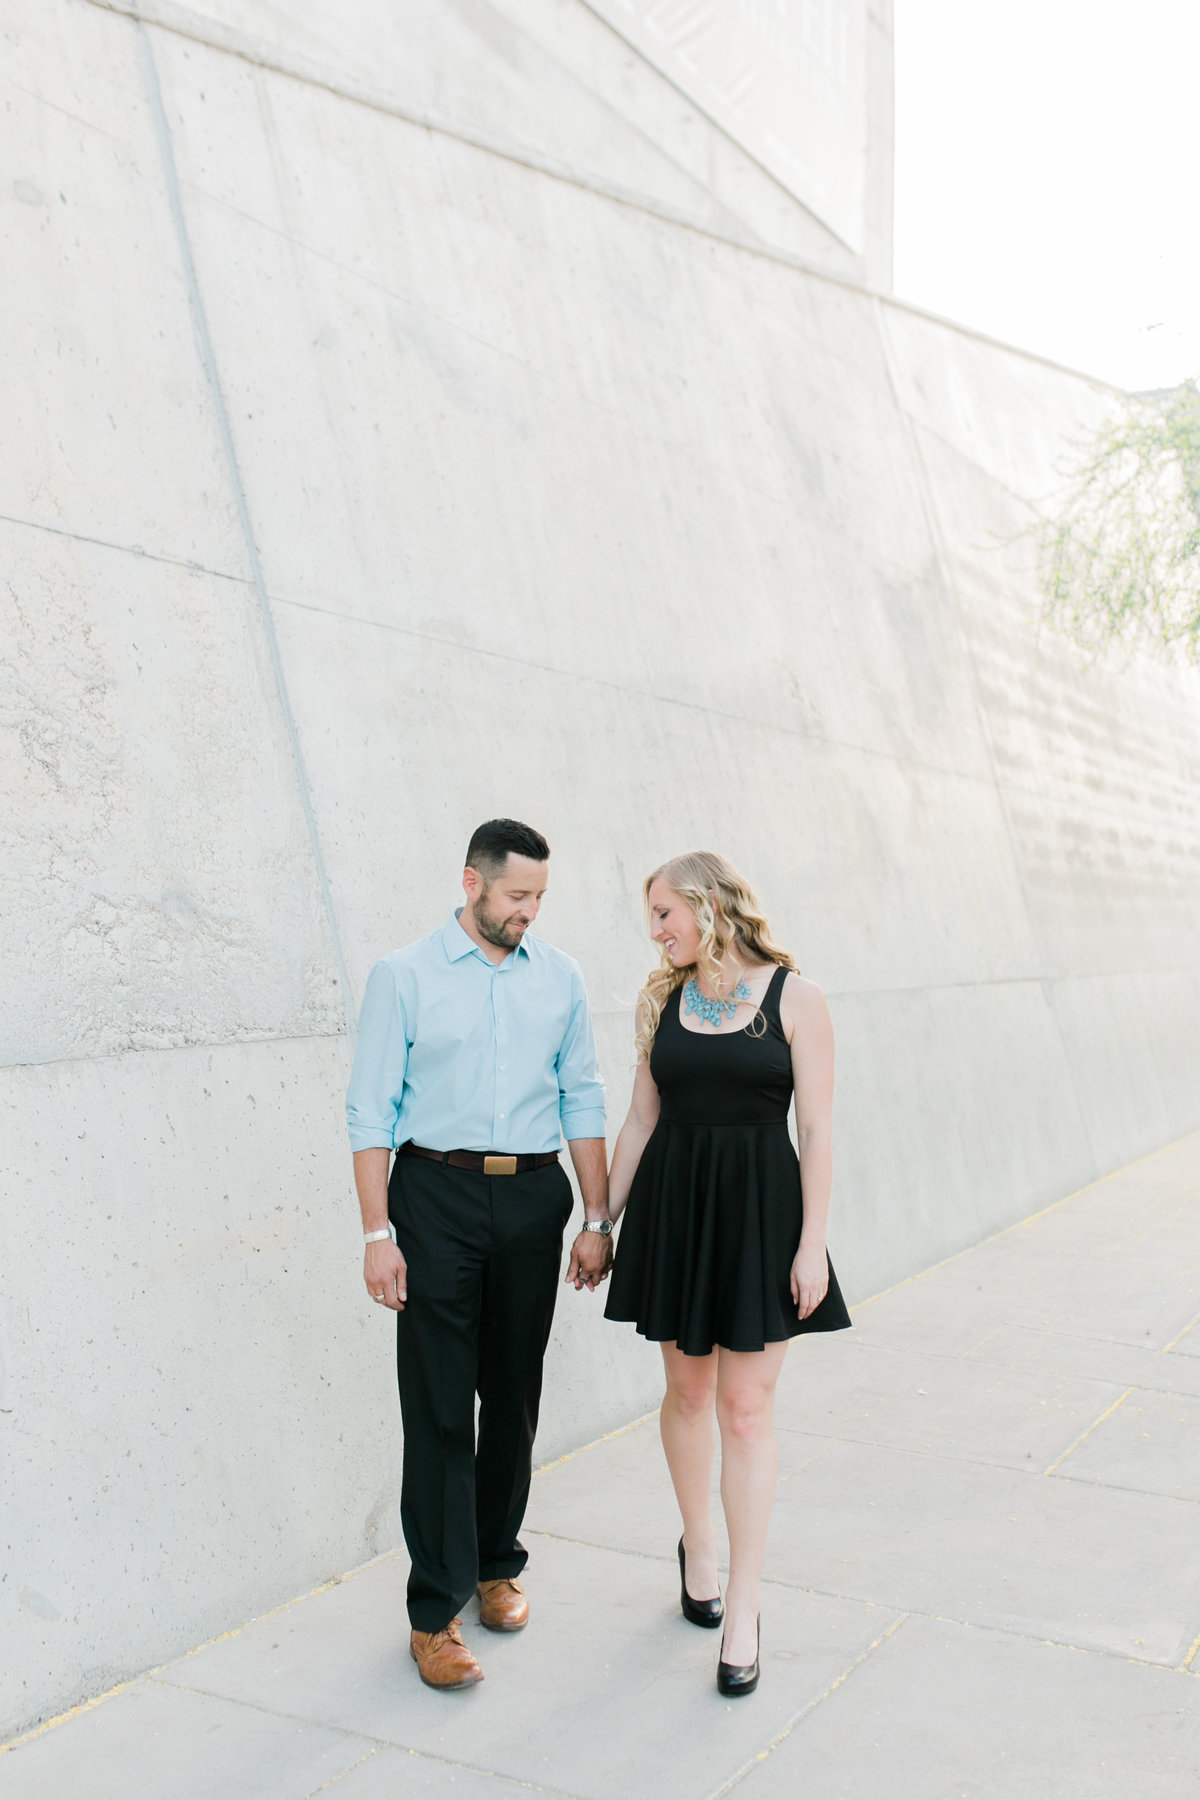 Karlie Colleen Photography - Liz & Lorenzo & Engagement Session-127